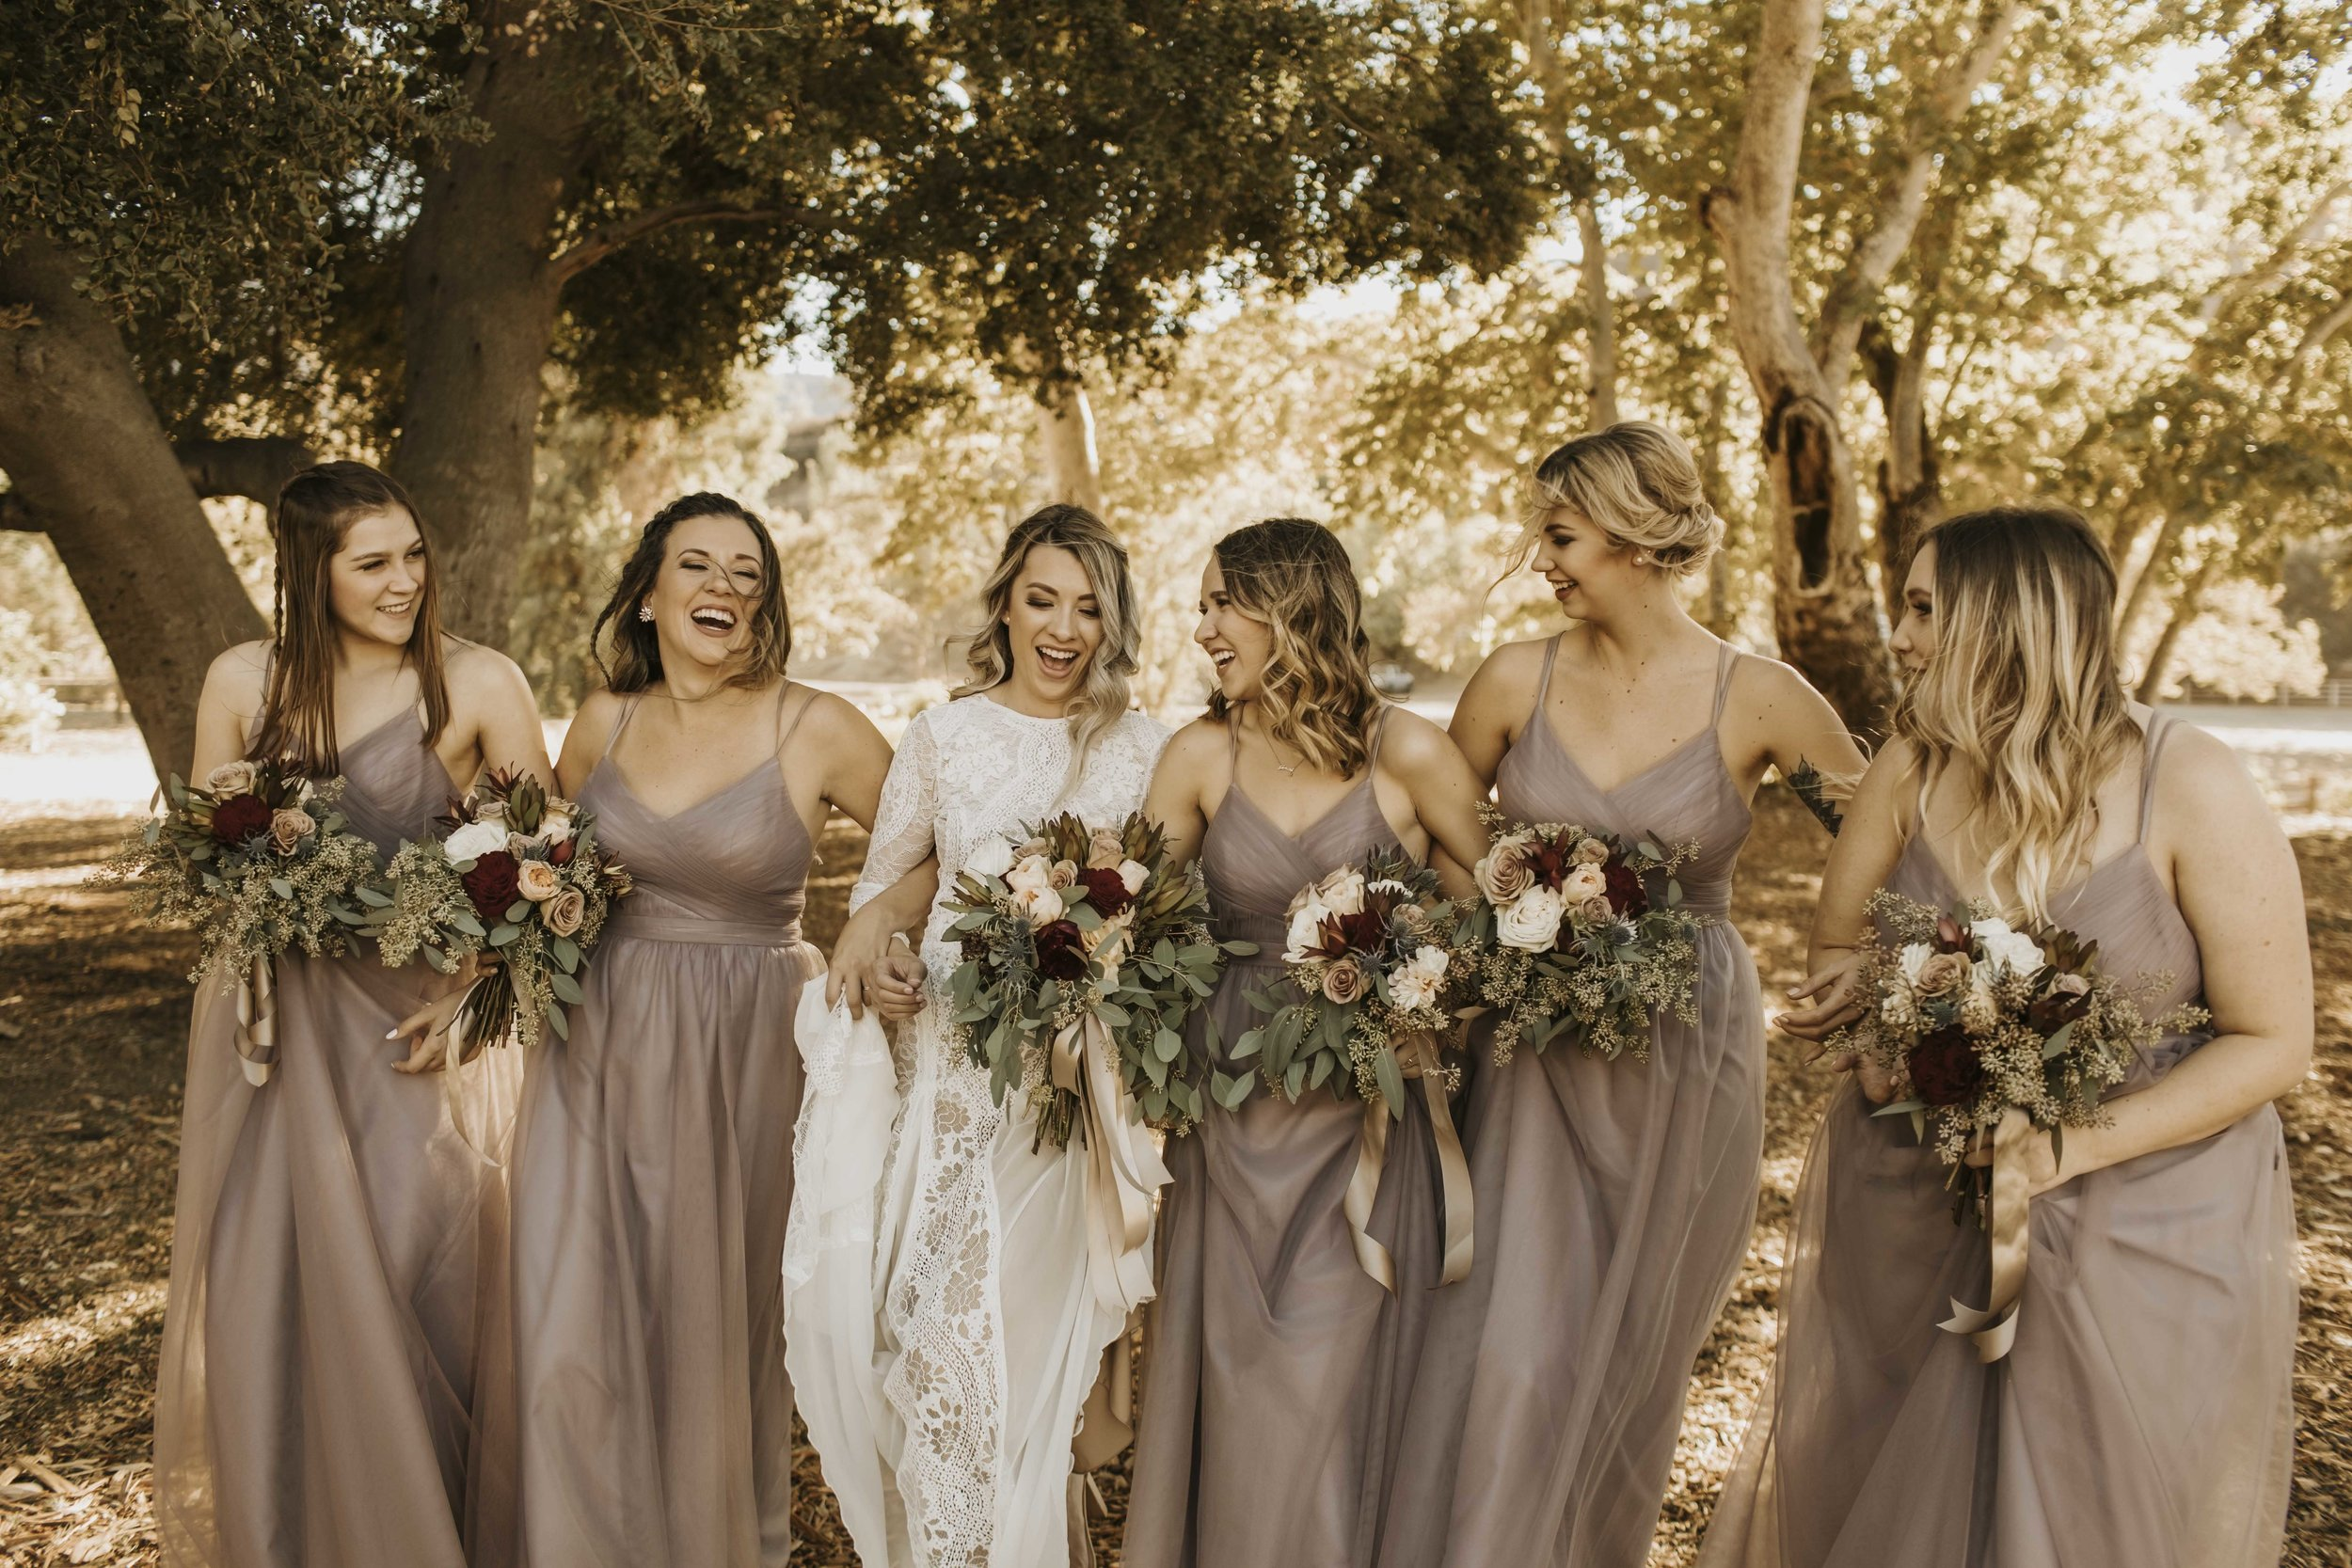 blush bridesmaid dresses.jpg